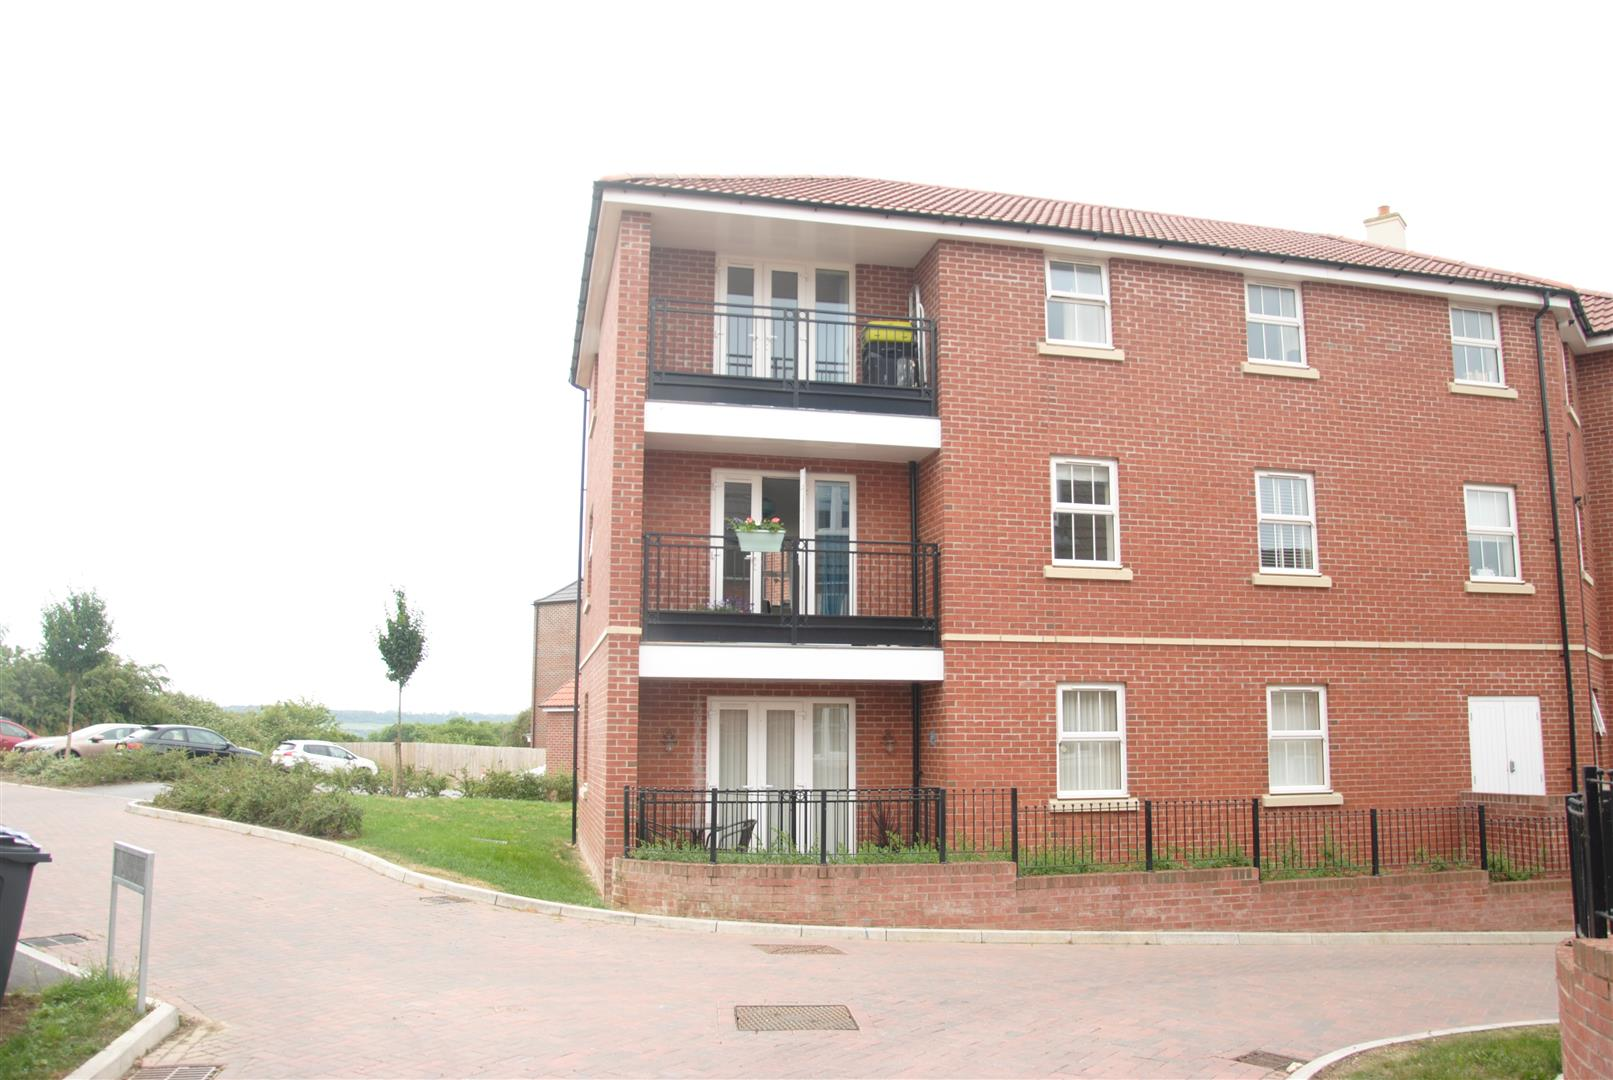 2 Bedrooms Flat for sale in Cloatley Crescent, Royal Wootton Bassett, Swindon